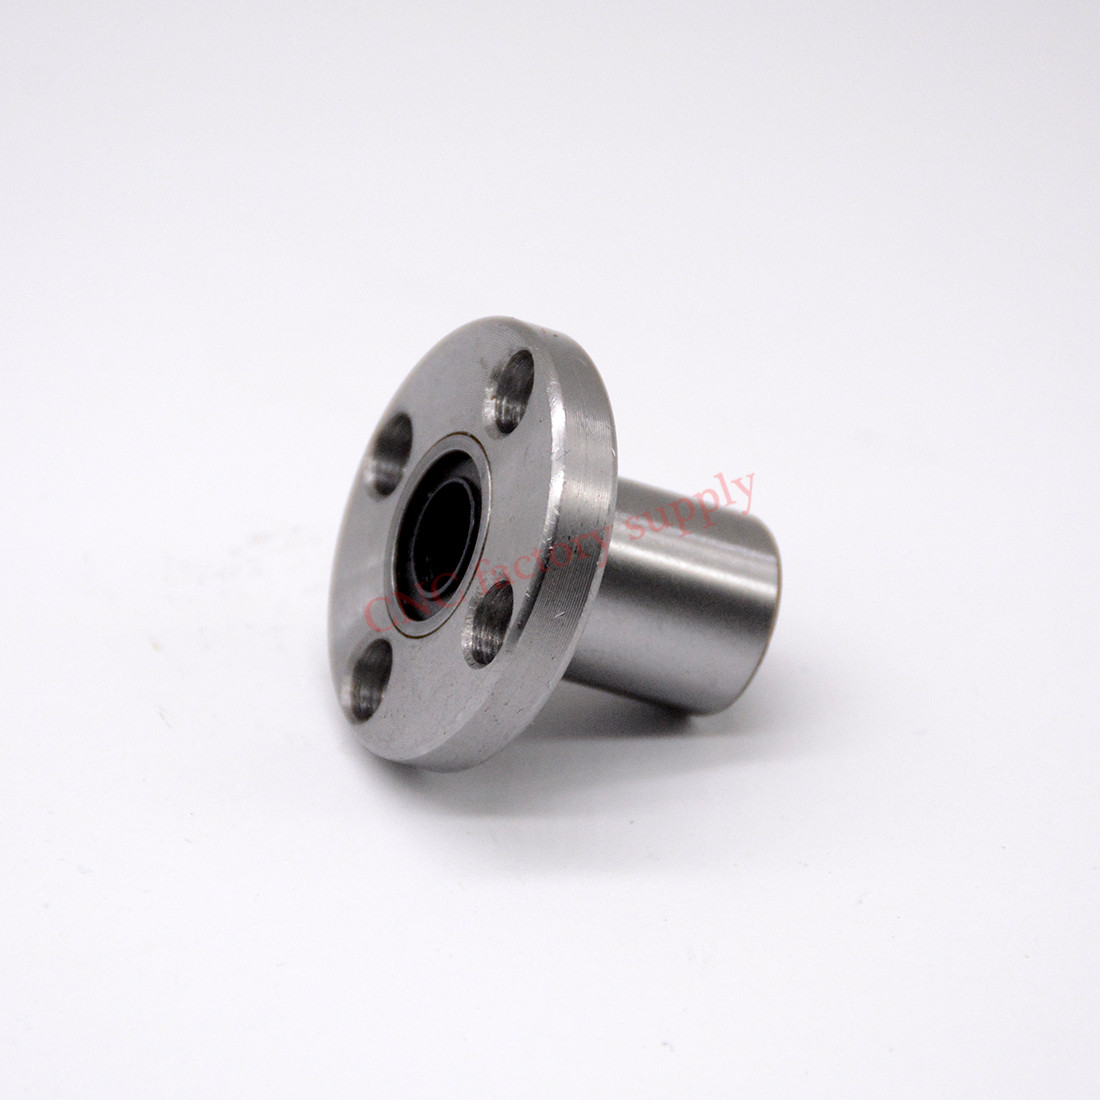 Hot sale  1pc LMF20UU 20mm flange linear ball bearing for 20mm linear shaft CNC hot sale cayler